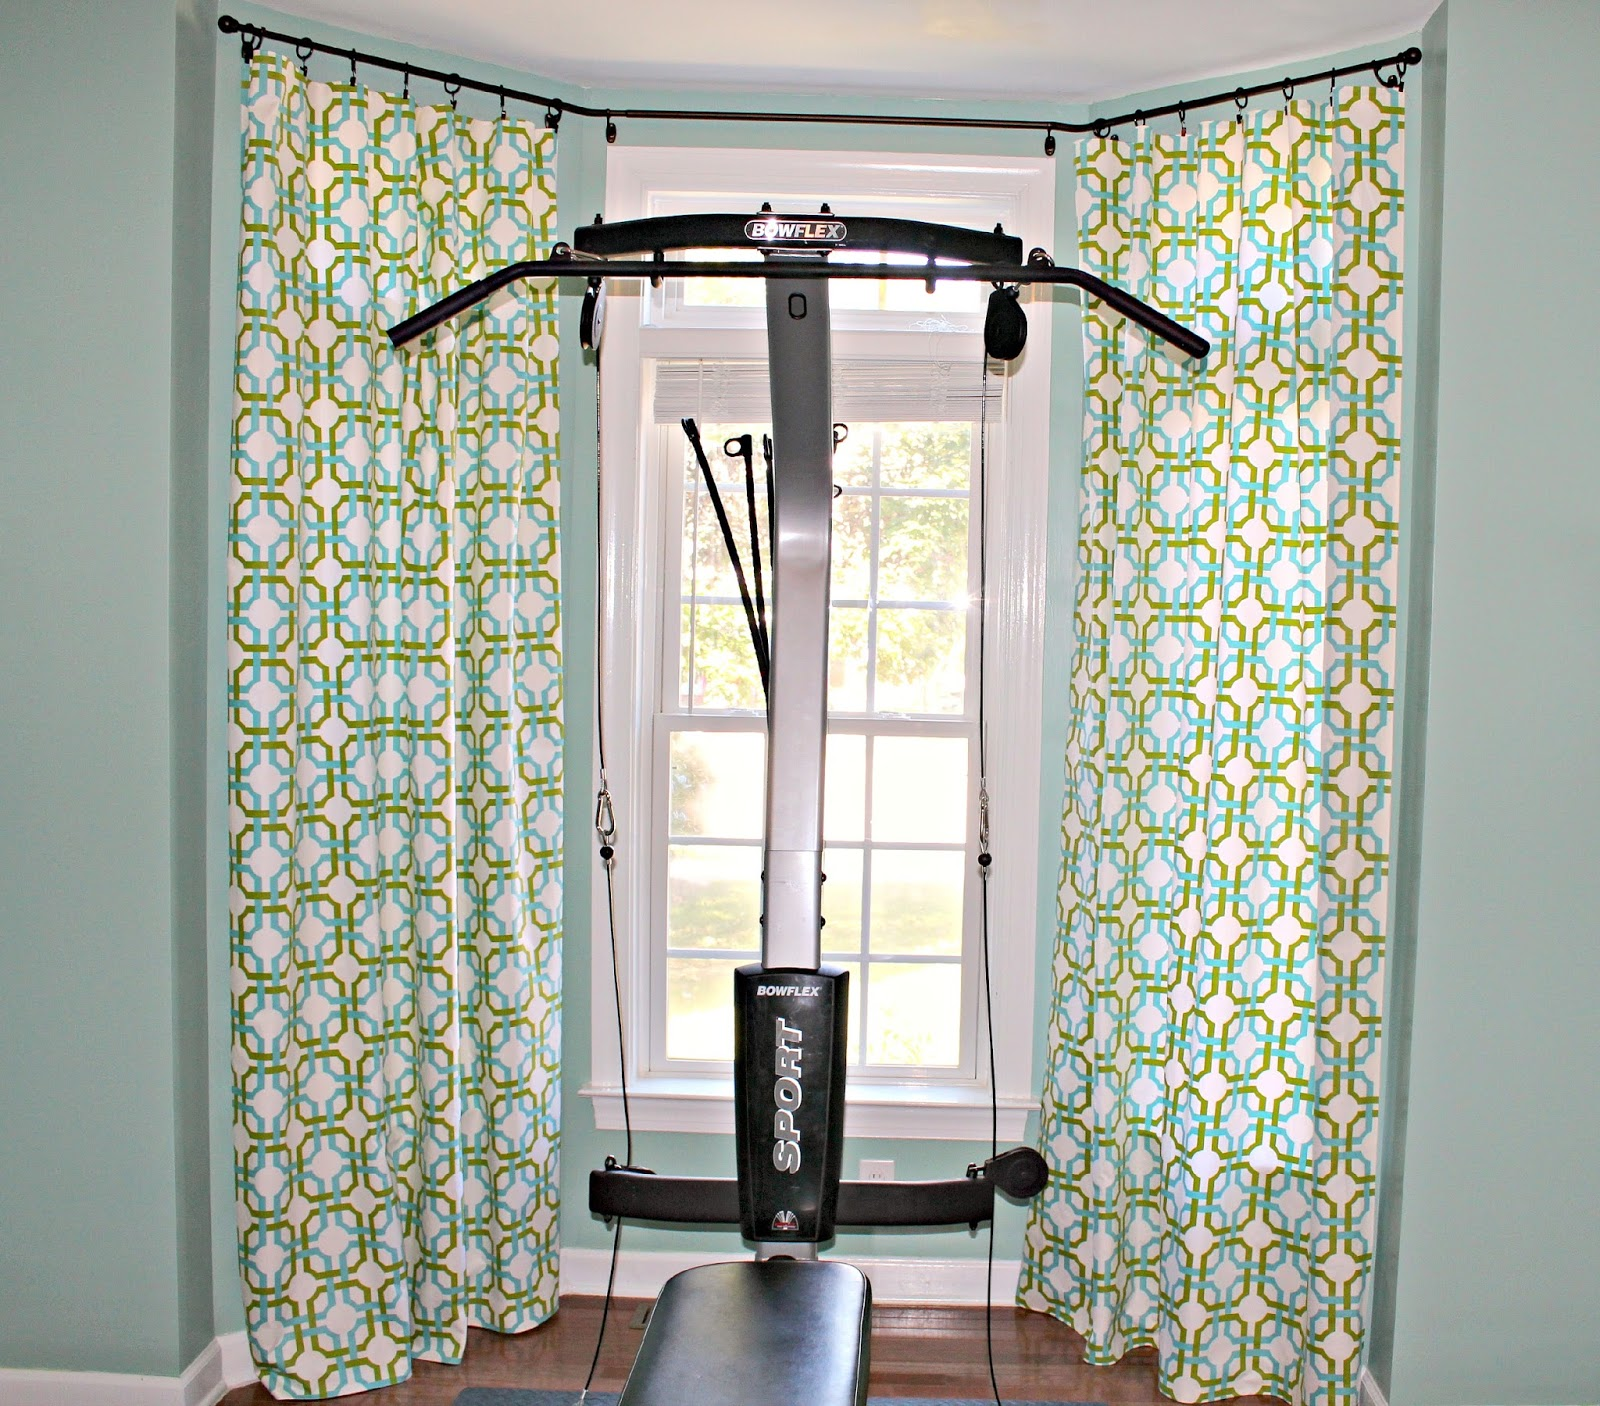 Carolina On My Mind: Home Gym: Waverly Groovy Grille No